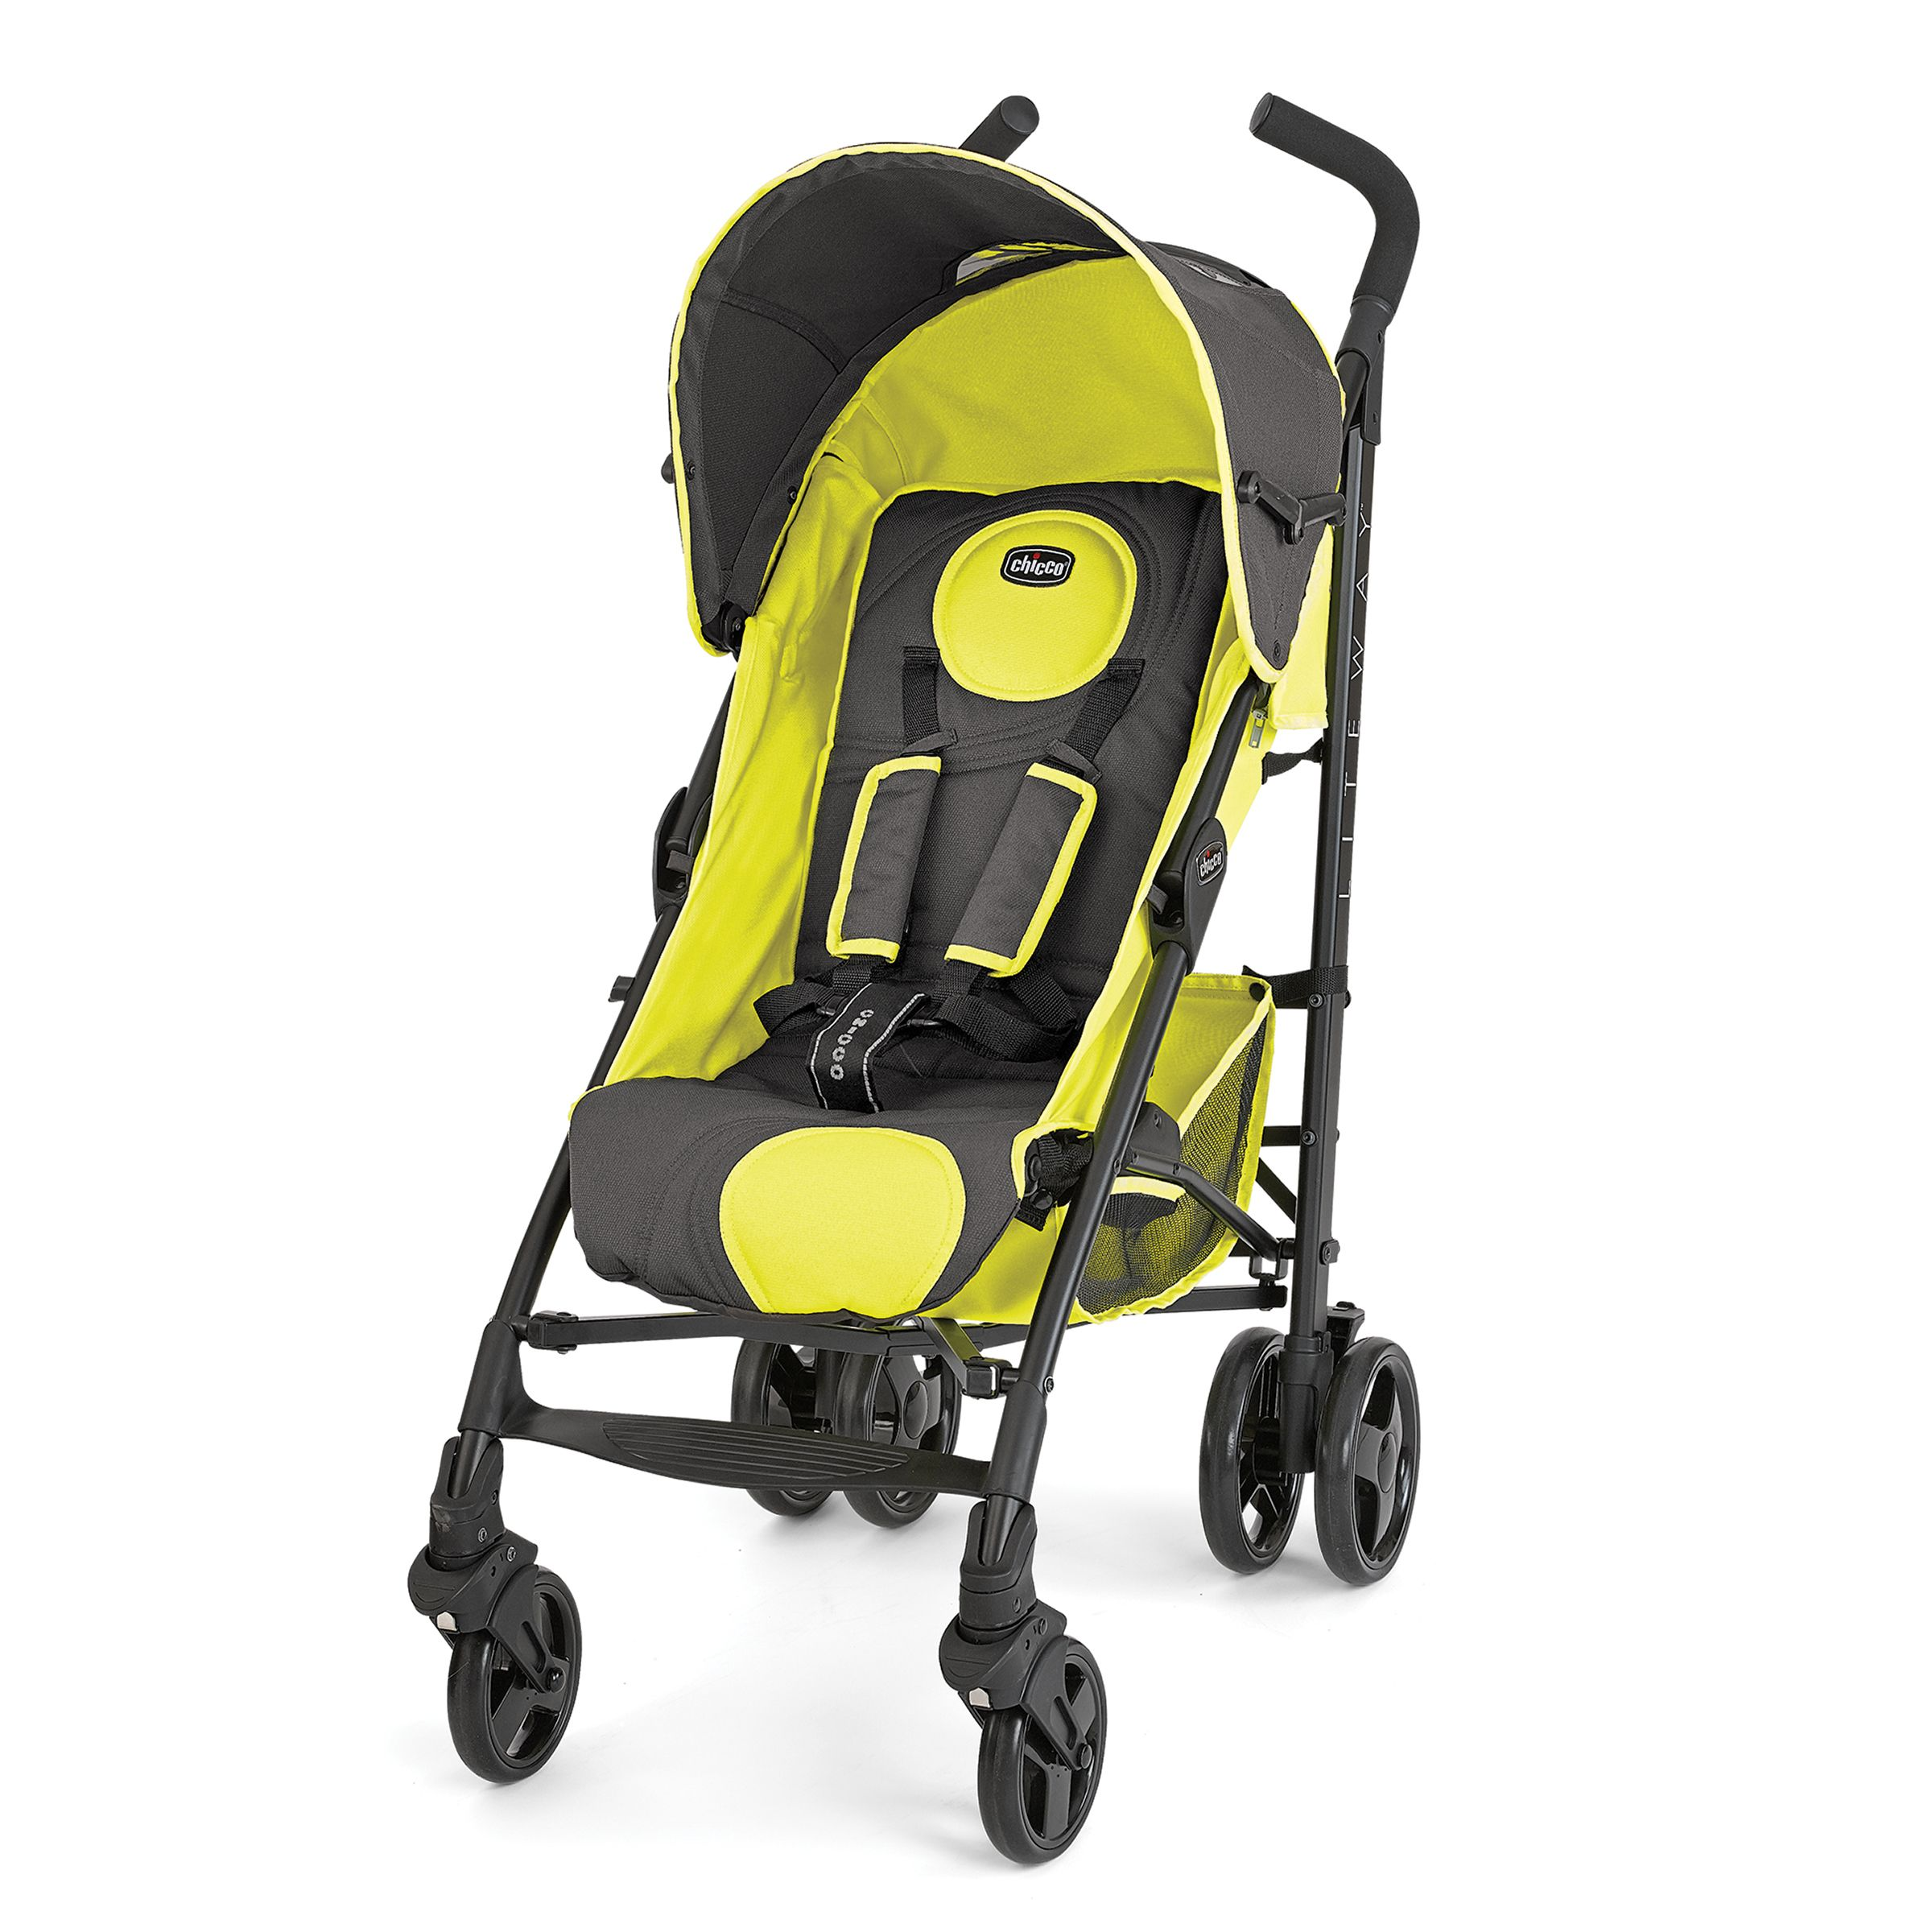 The Chicco Liteway is an and stylish